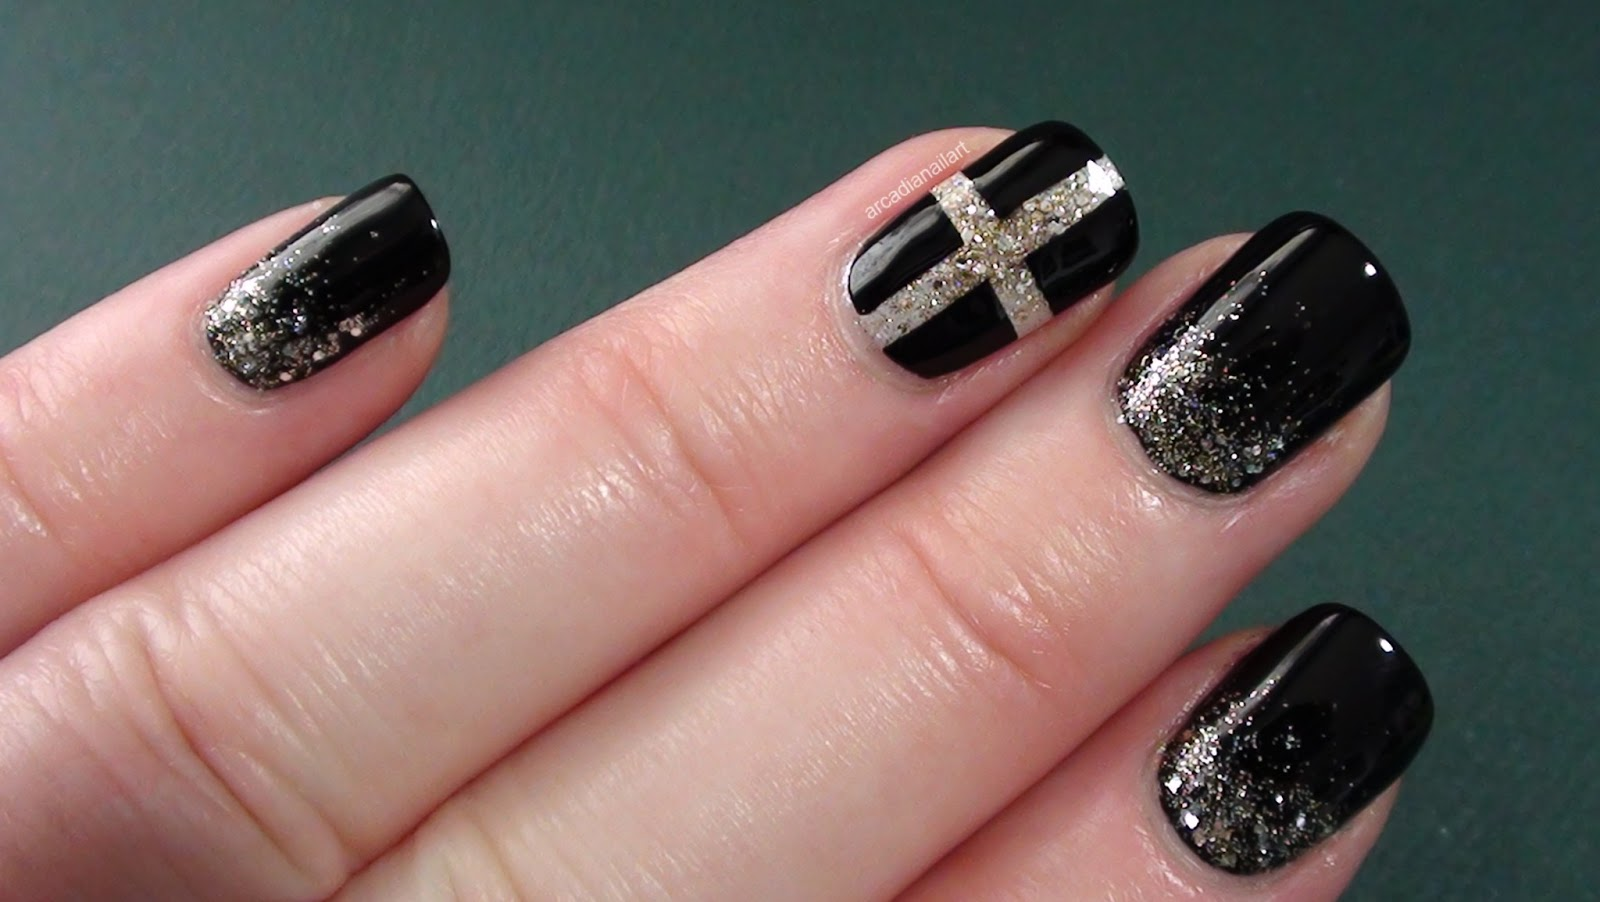 ArcadiaNailArt: Chic Chanel Inspired Nails